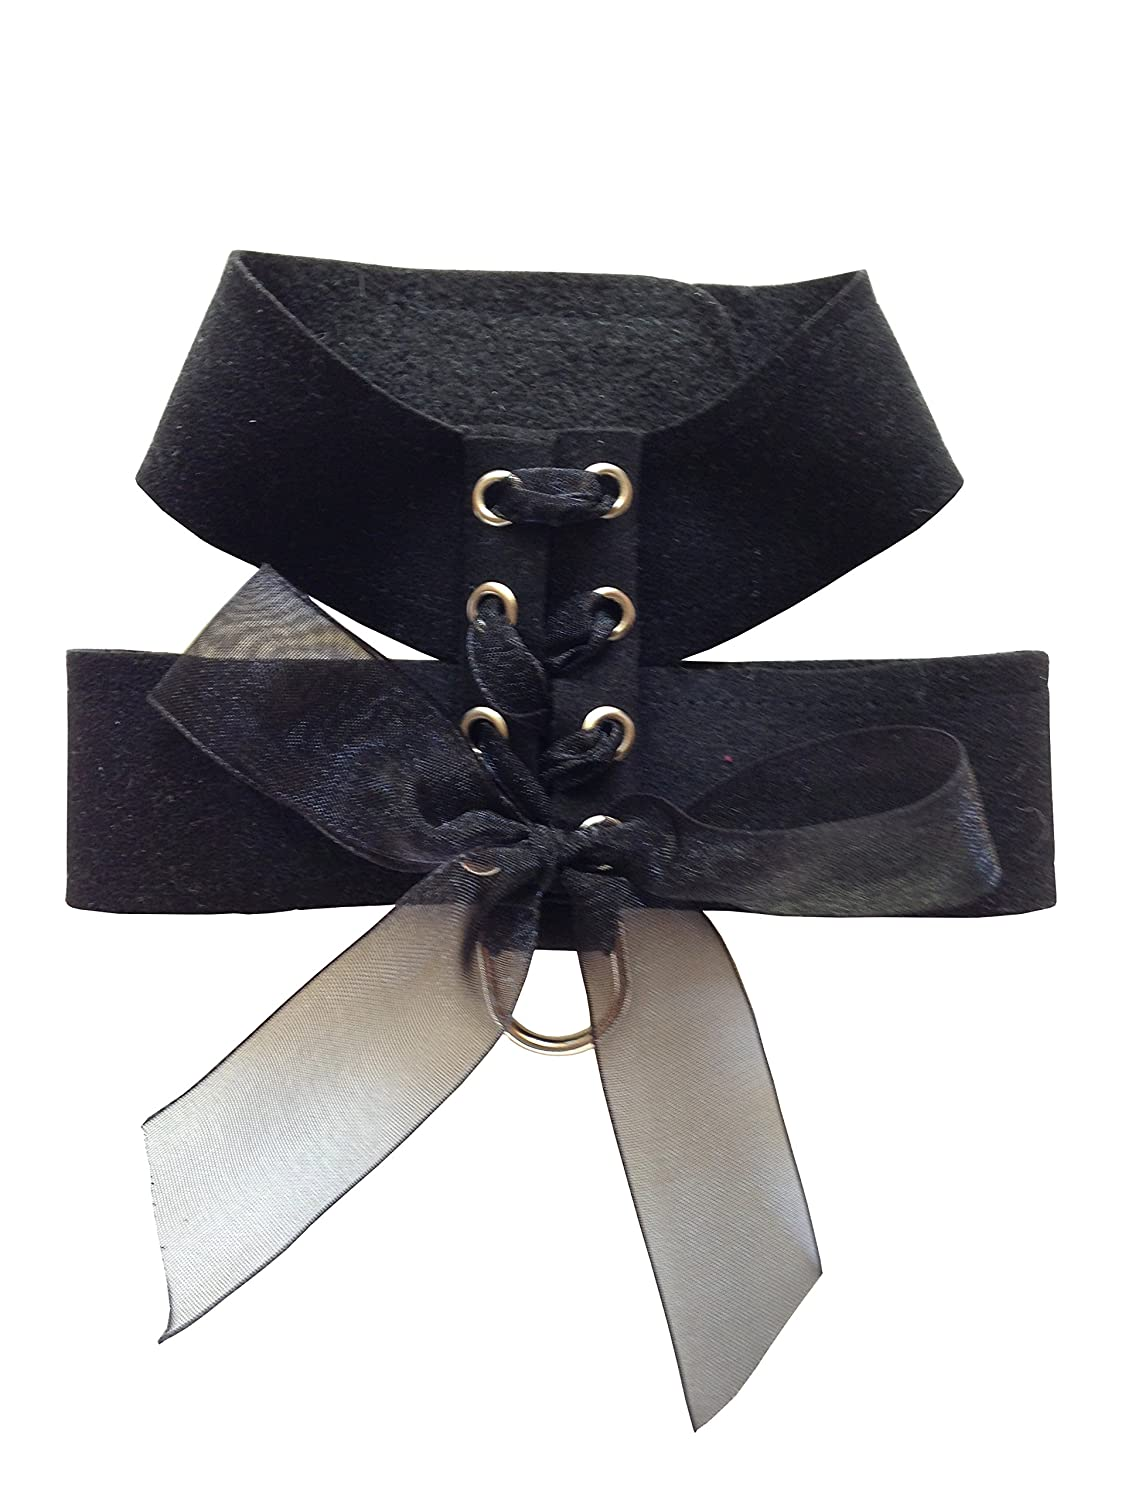 Parisian Corset Harness by The Dog Squad, Black, S 12-14in